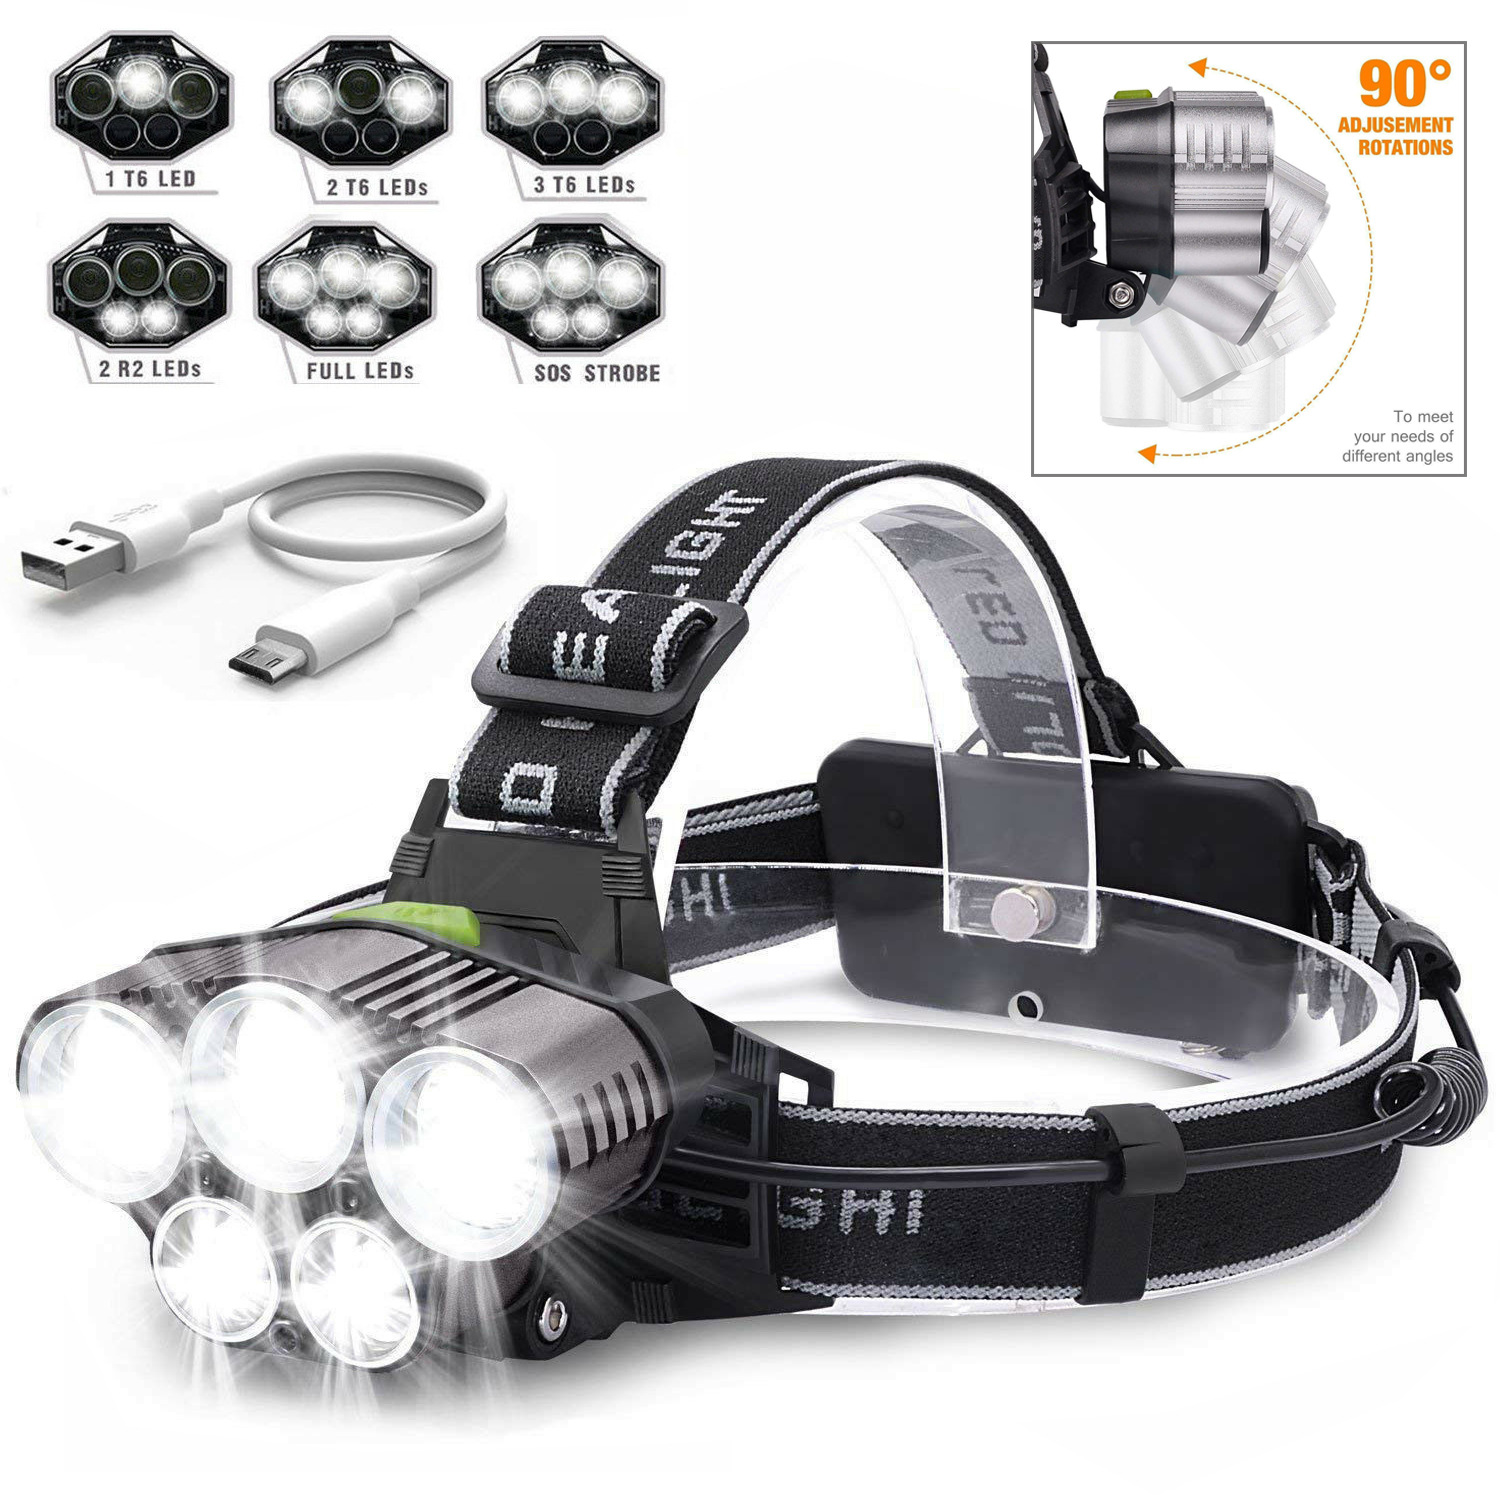 90000LM 1*T6 LED+2*XPE LED Headlamp Rechargeable Headlight Light Head Torch UK